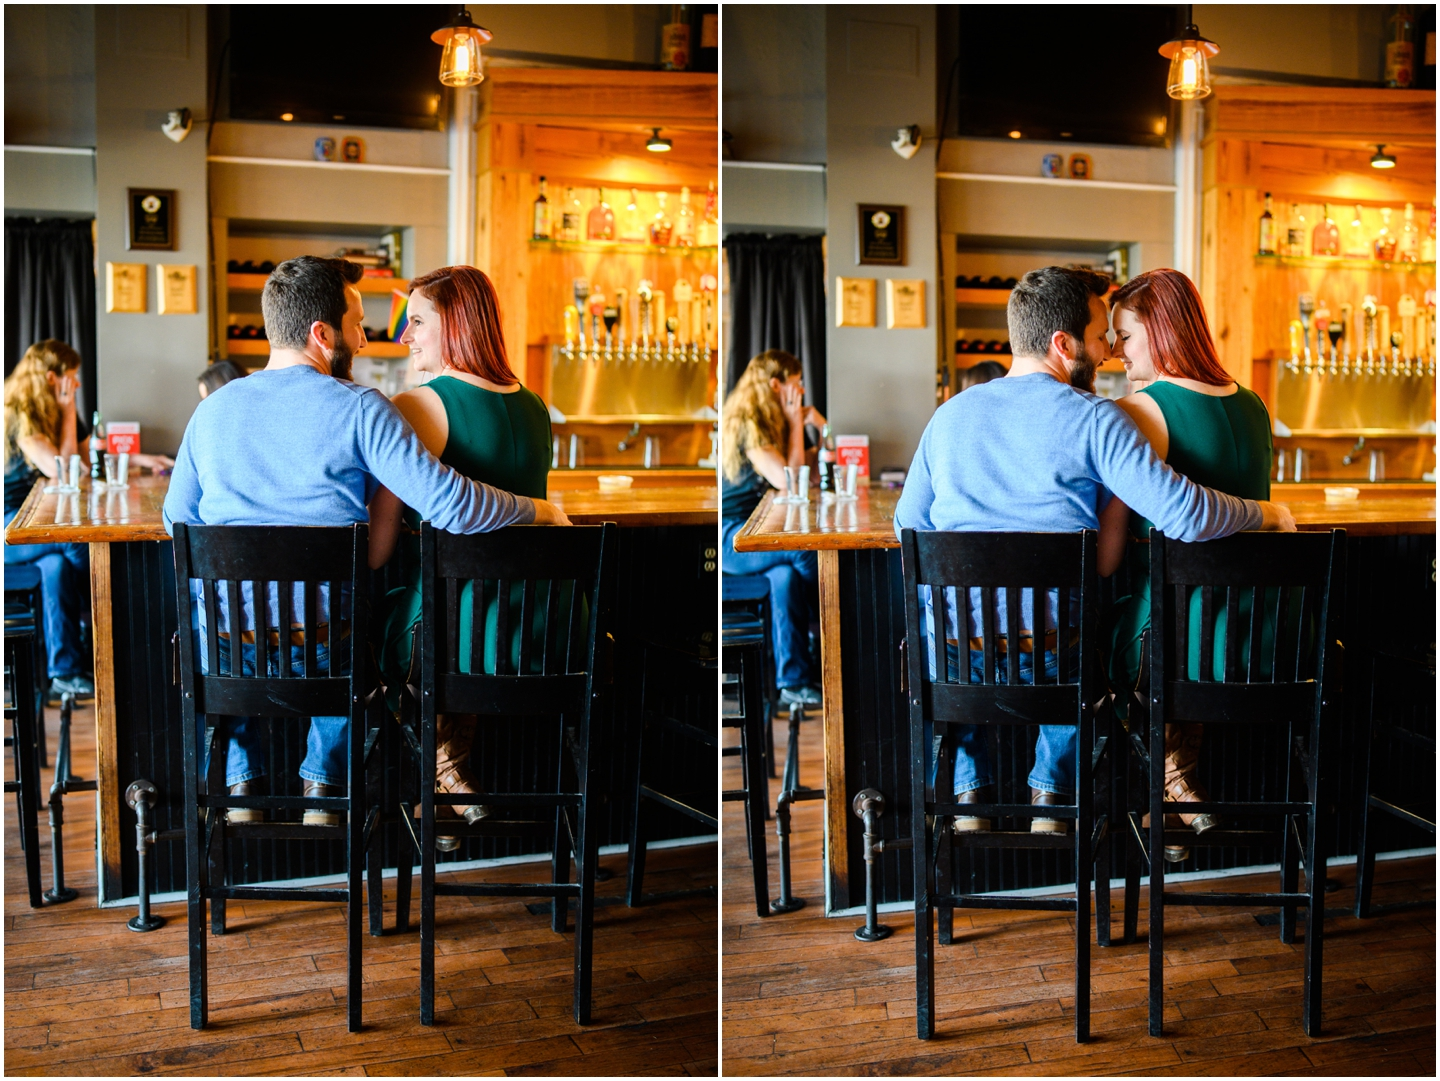 A couple sitting at a bar together